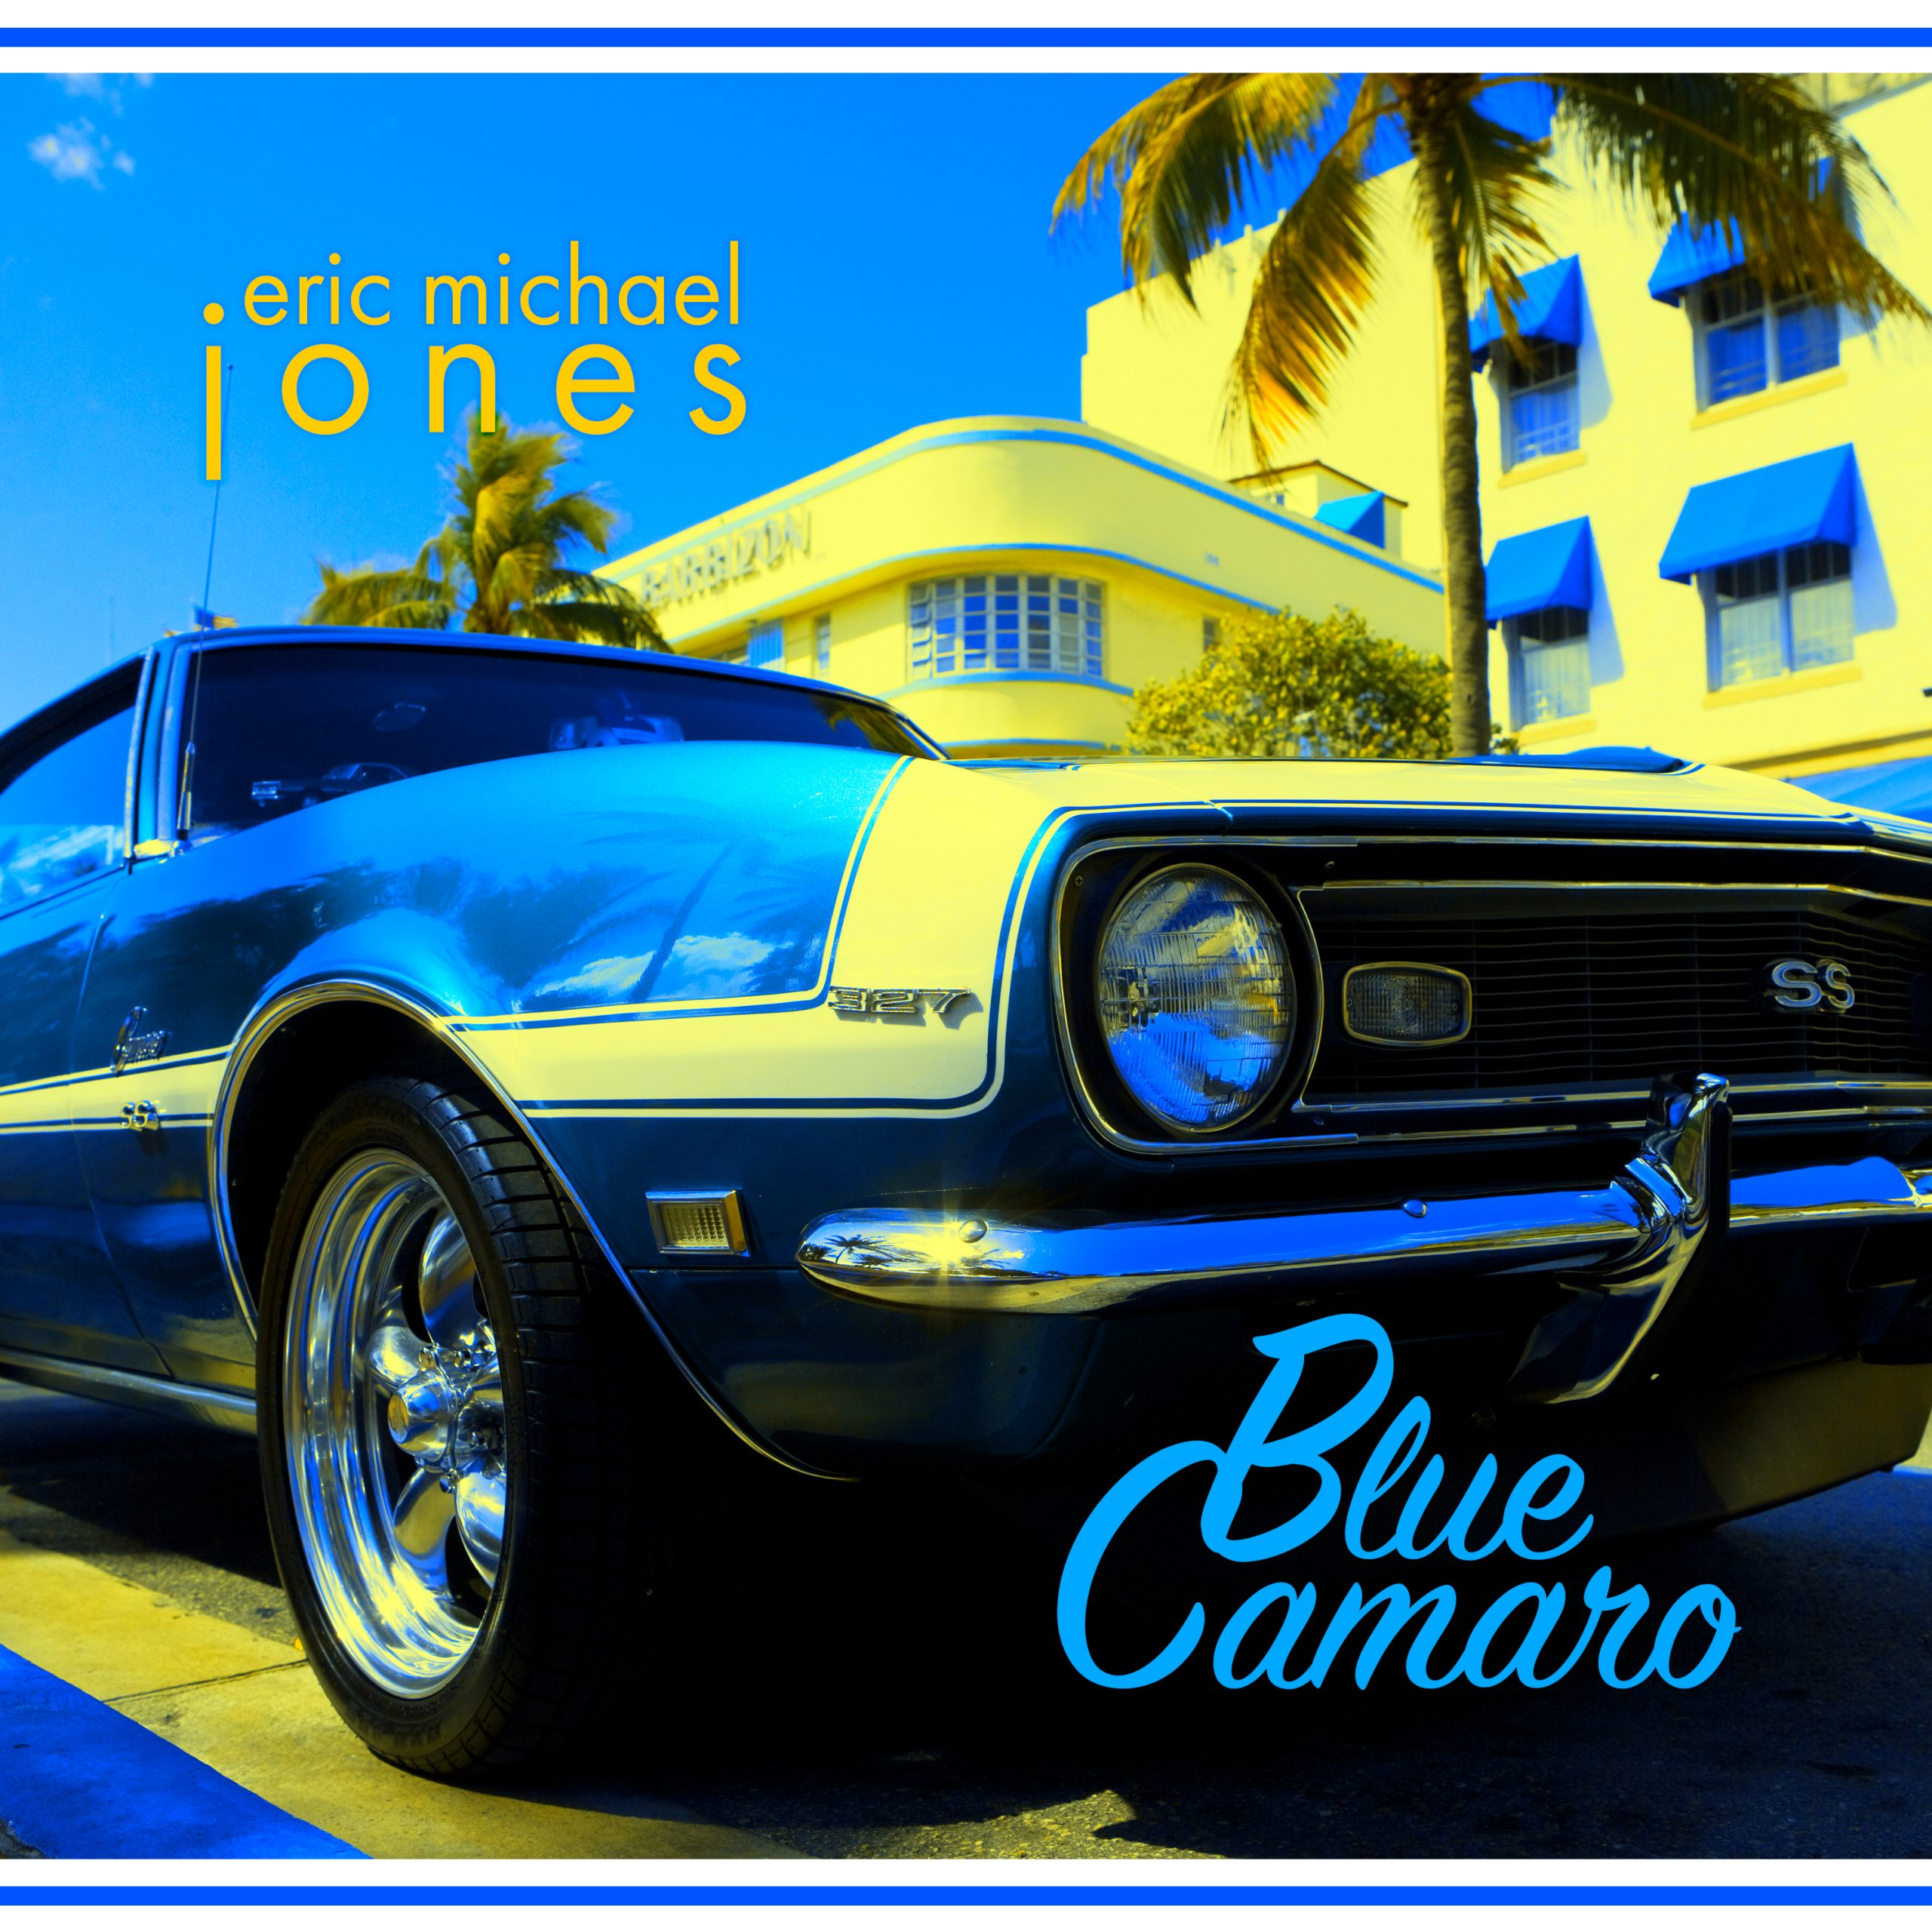 Cover art for Blue Camaro, showing a blue Camaro parked on Ocean Drive in Miami Beach